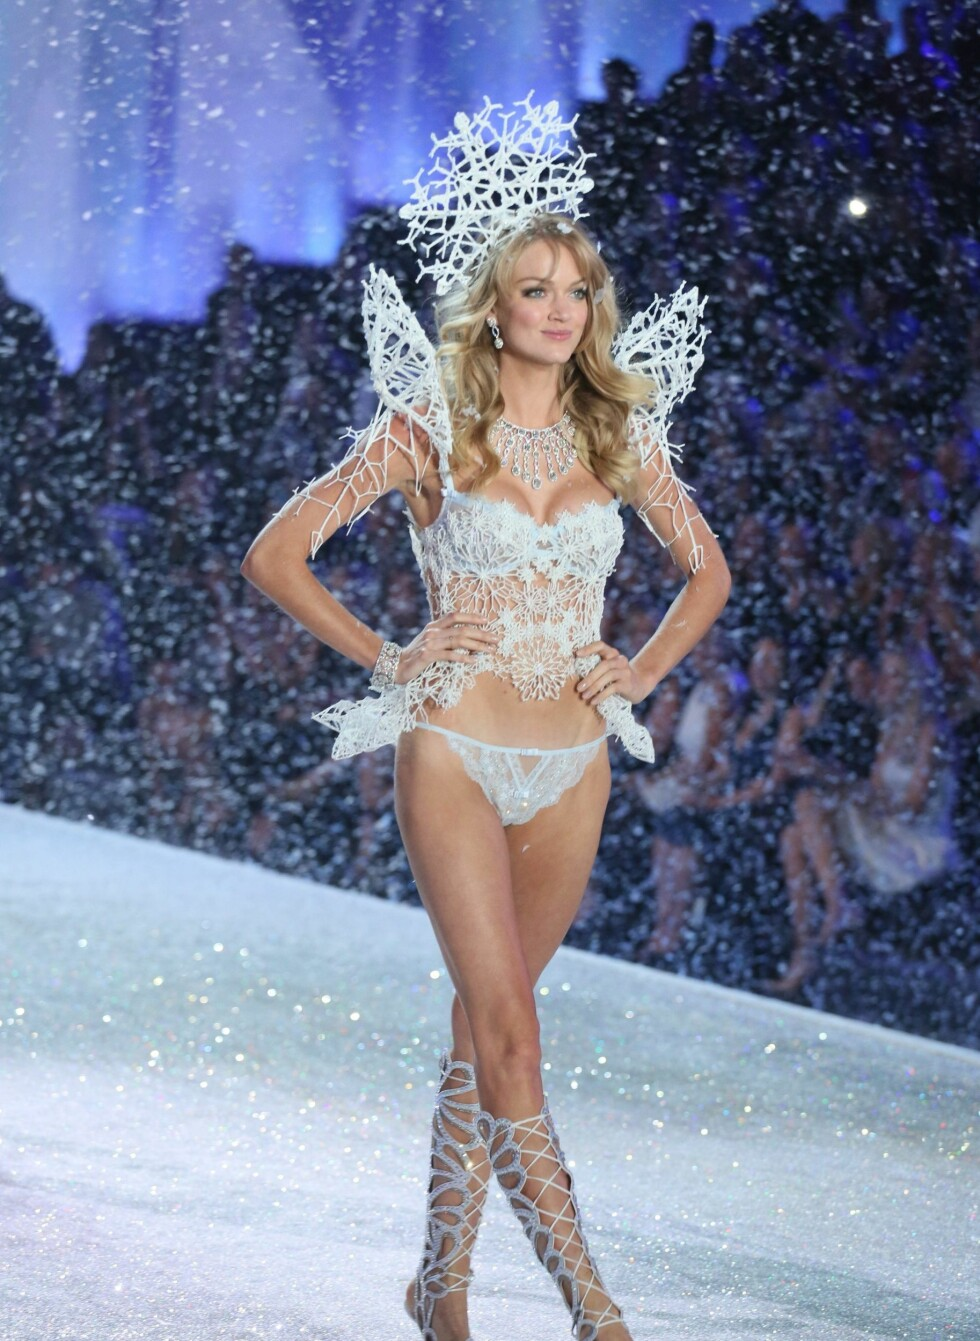 Victorias Secret Model on the catwalk *** Local Caption *** 10.3370092fp Foto: REX/Erik Pendzich/Rex/All Over P